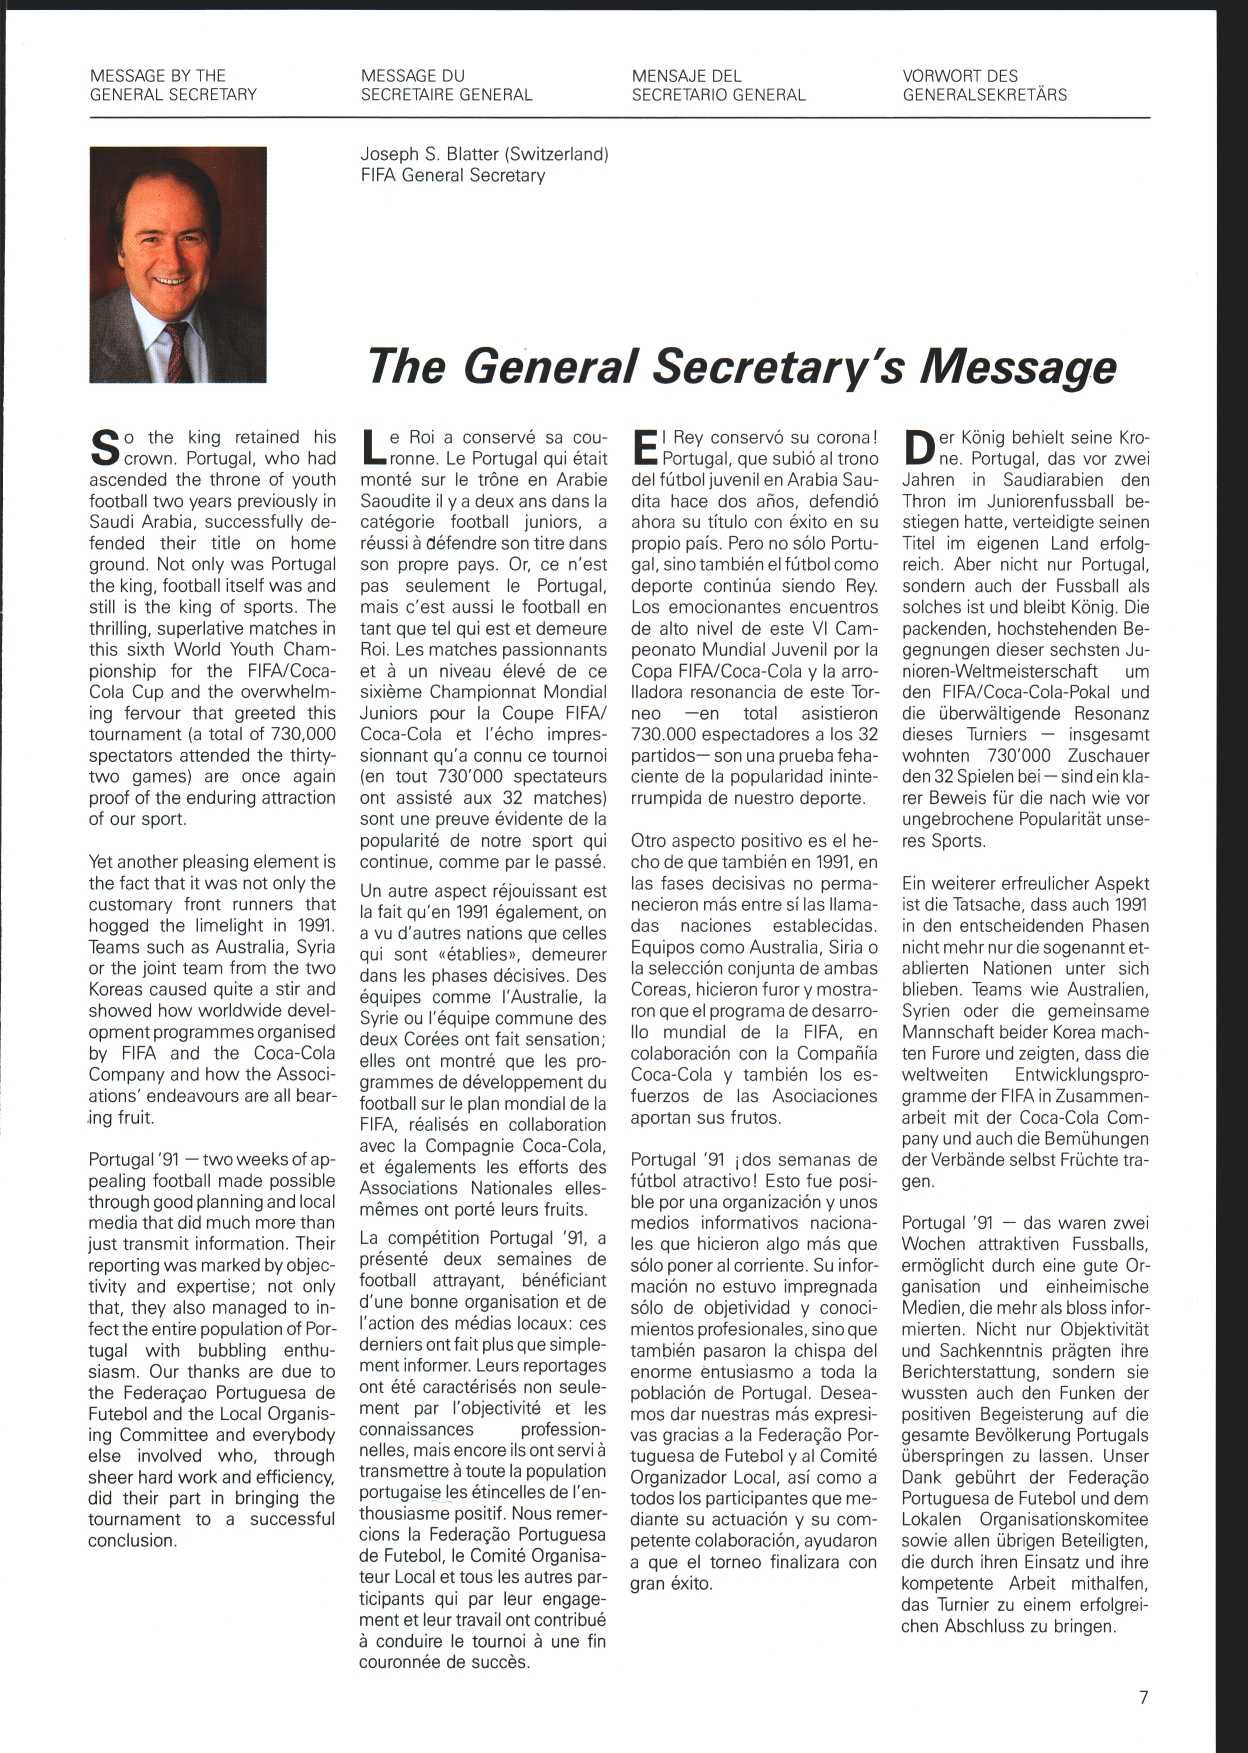 MESSAGE BY THE GENERAL SECRETARY MESSAGE DU SECRETAIBE GENERAL MENSAJE DEL SECRETARIO GENERAL VORWORT DES GENERALSEKRETÄRS Joseph S Blatter (Switzerland) FIFA General Secretary The Genera/